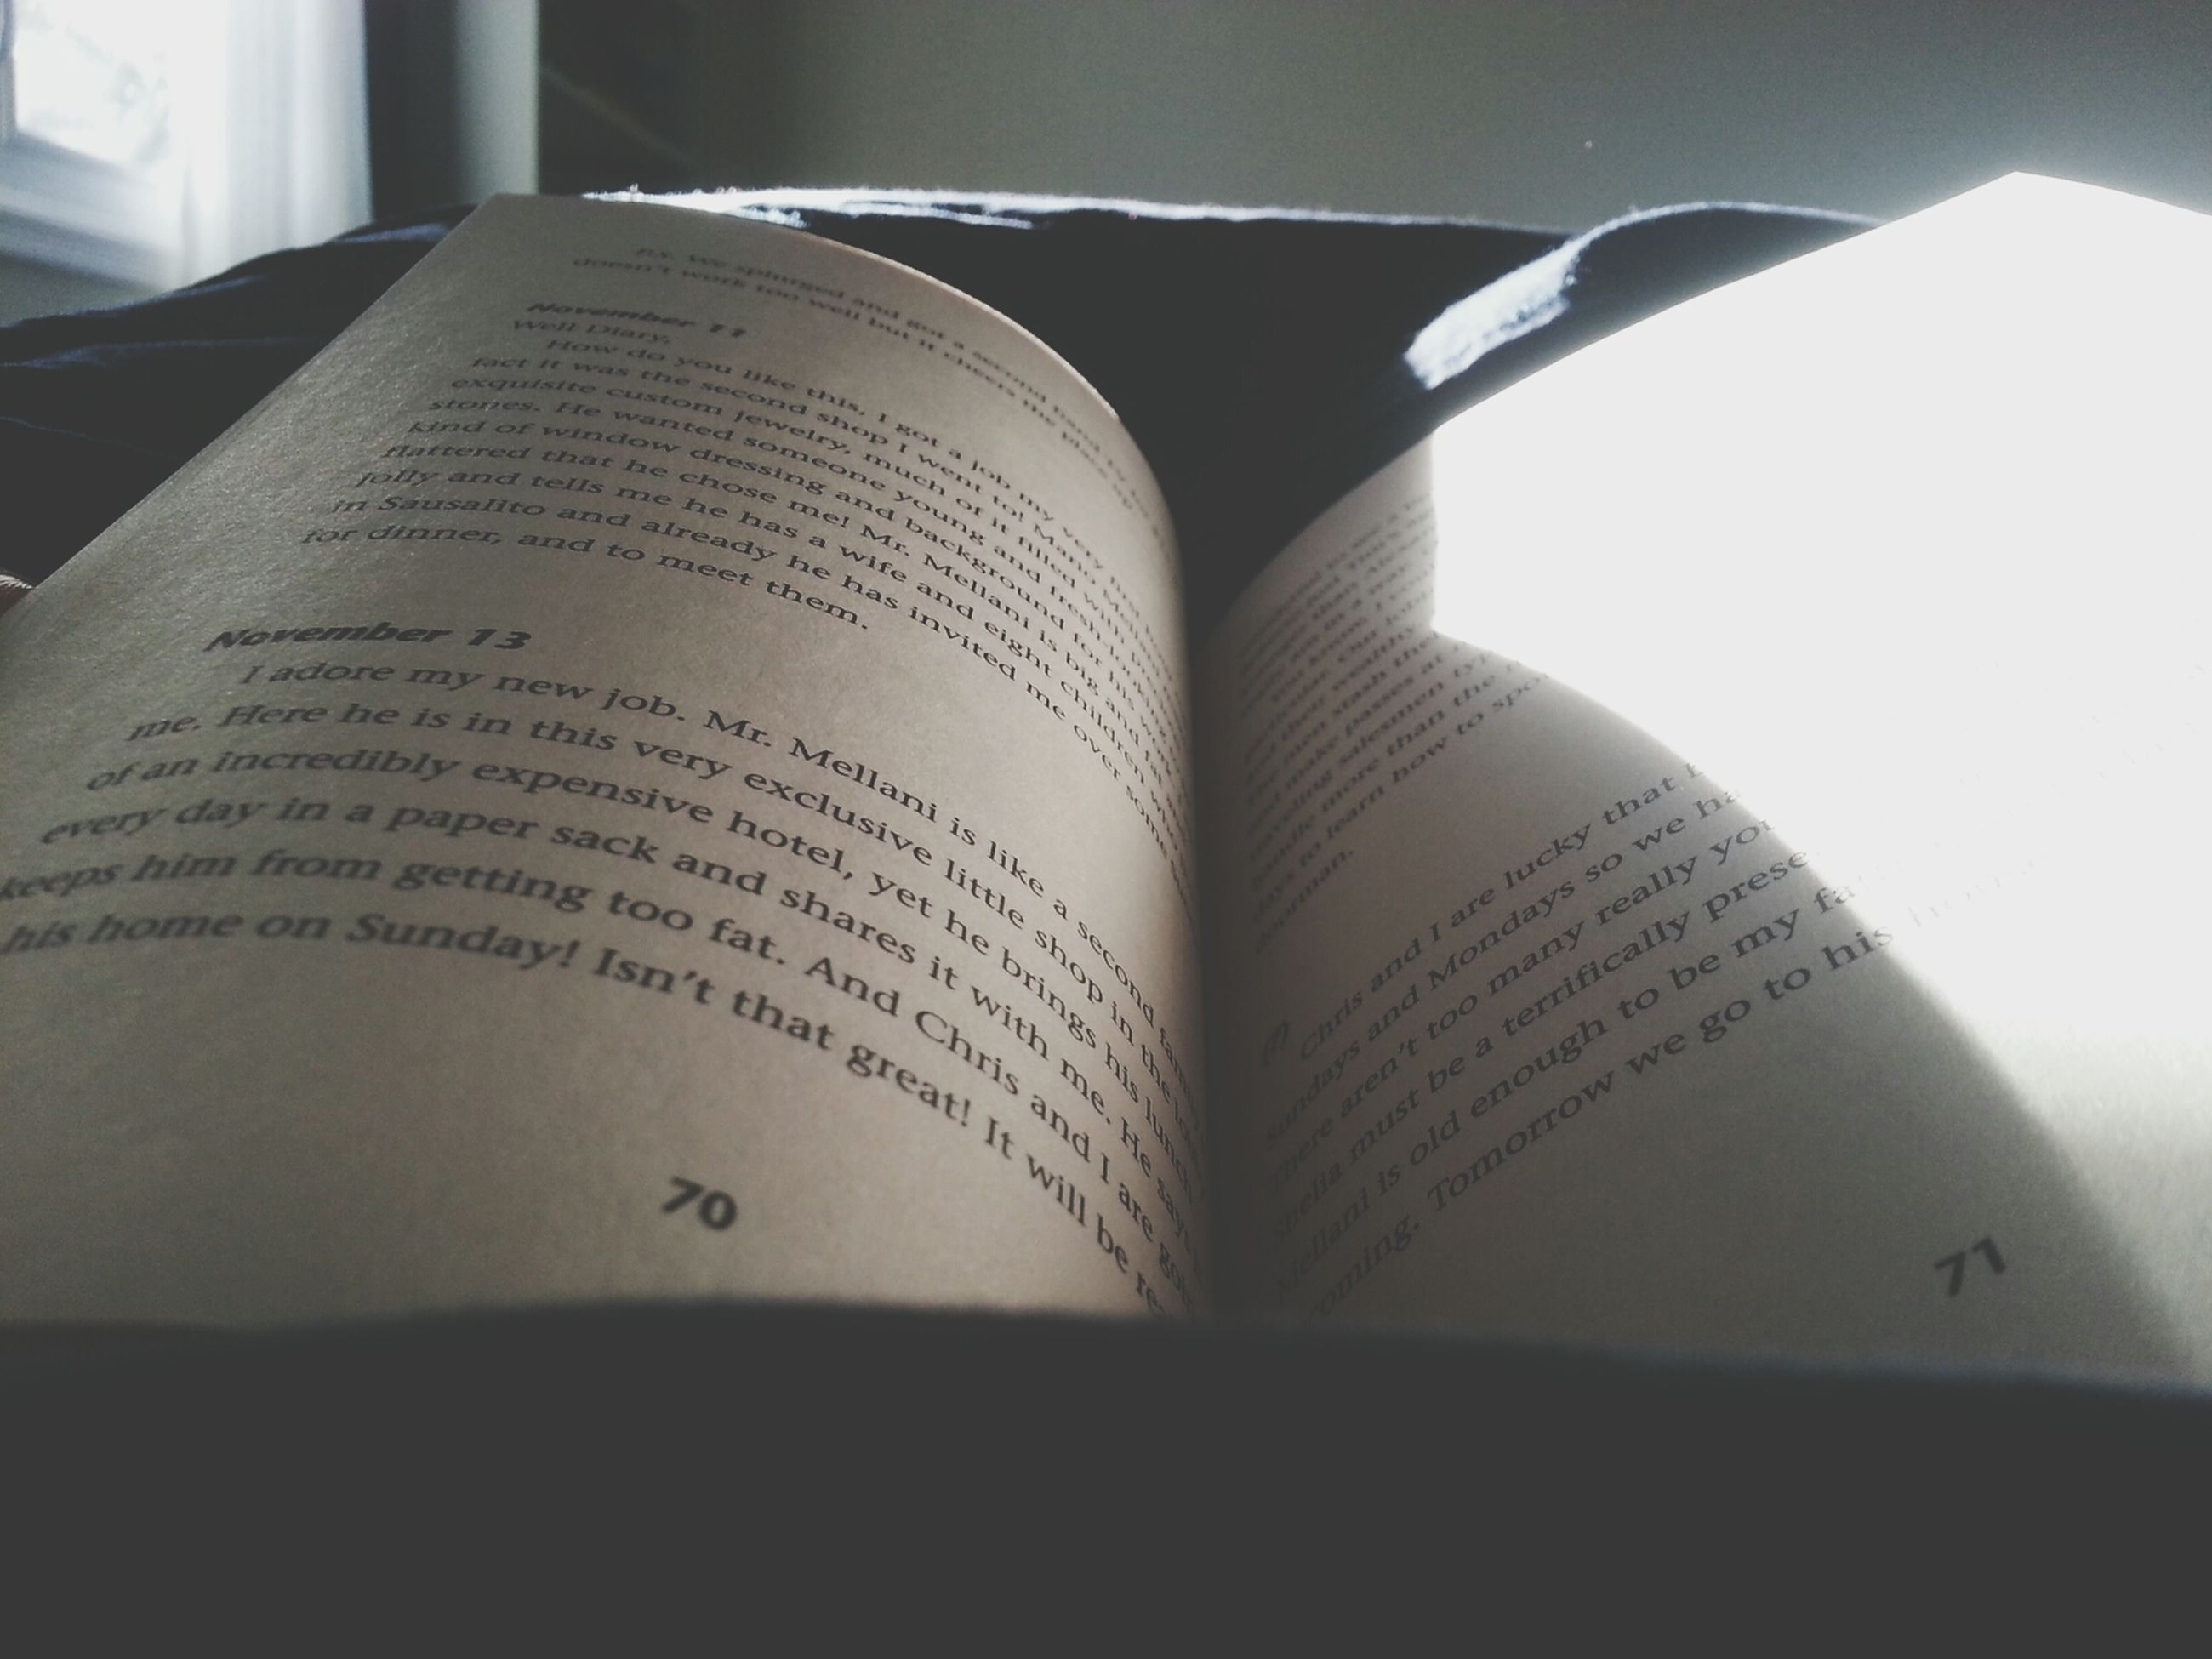 indoors, text, paper, communication, close-up, western script, book, education, still life, no people, open, selective focus, focus on foreground, part of, page, home interior, detail, day, number, cropped